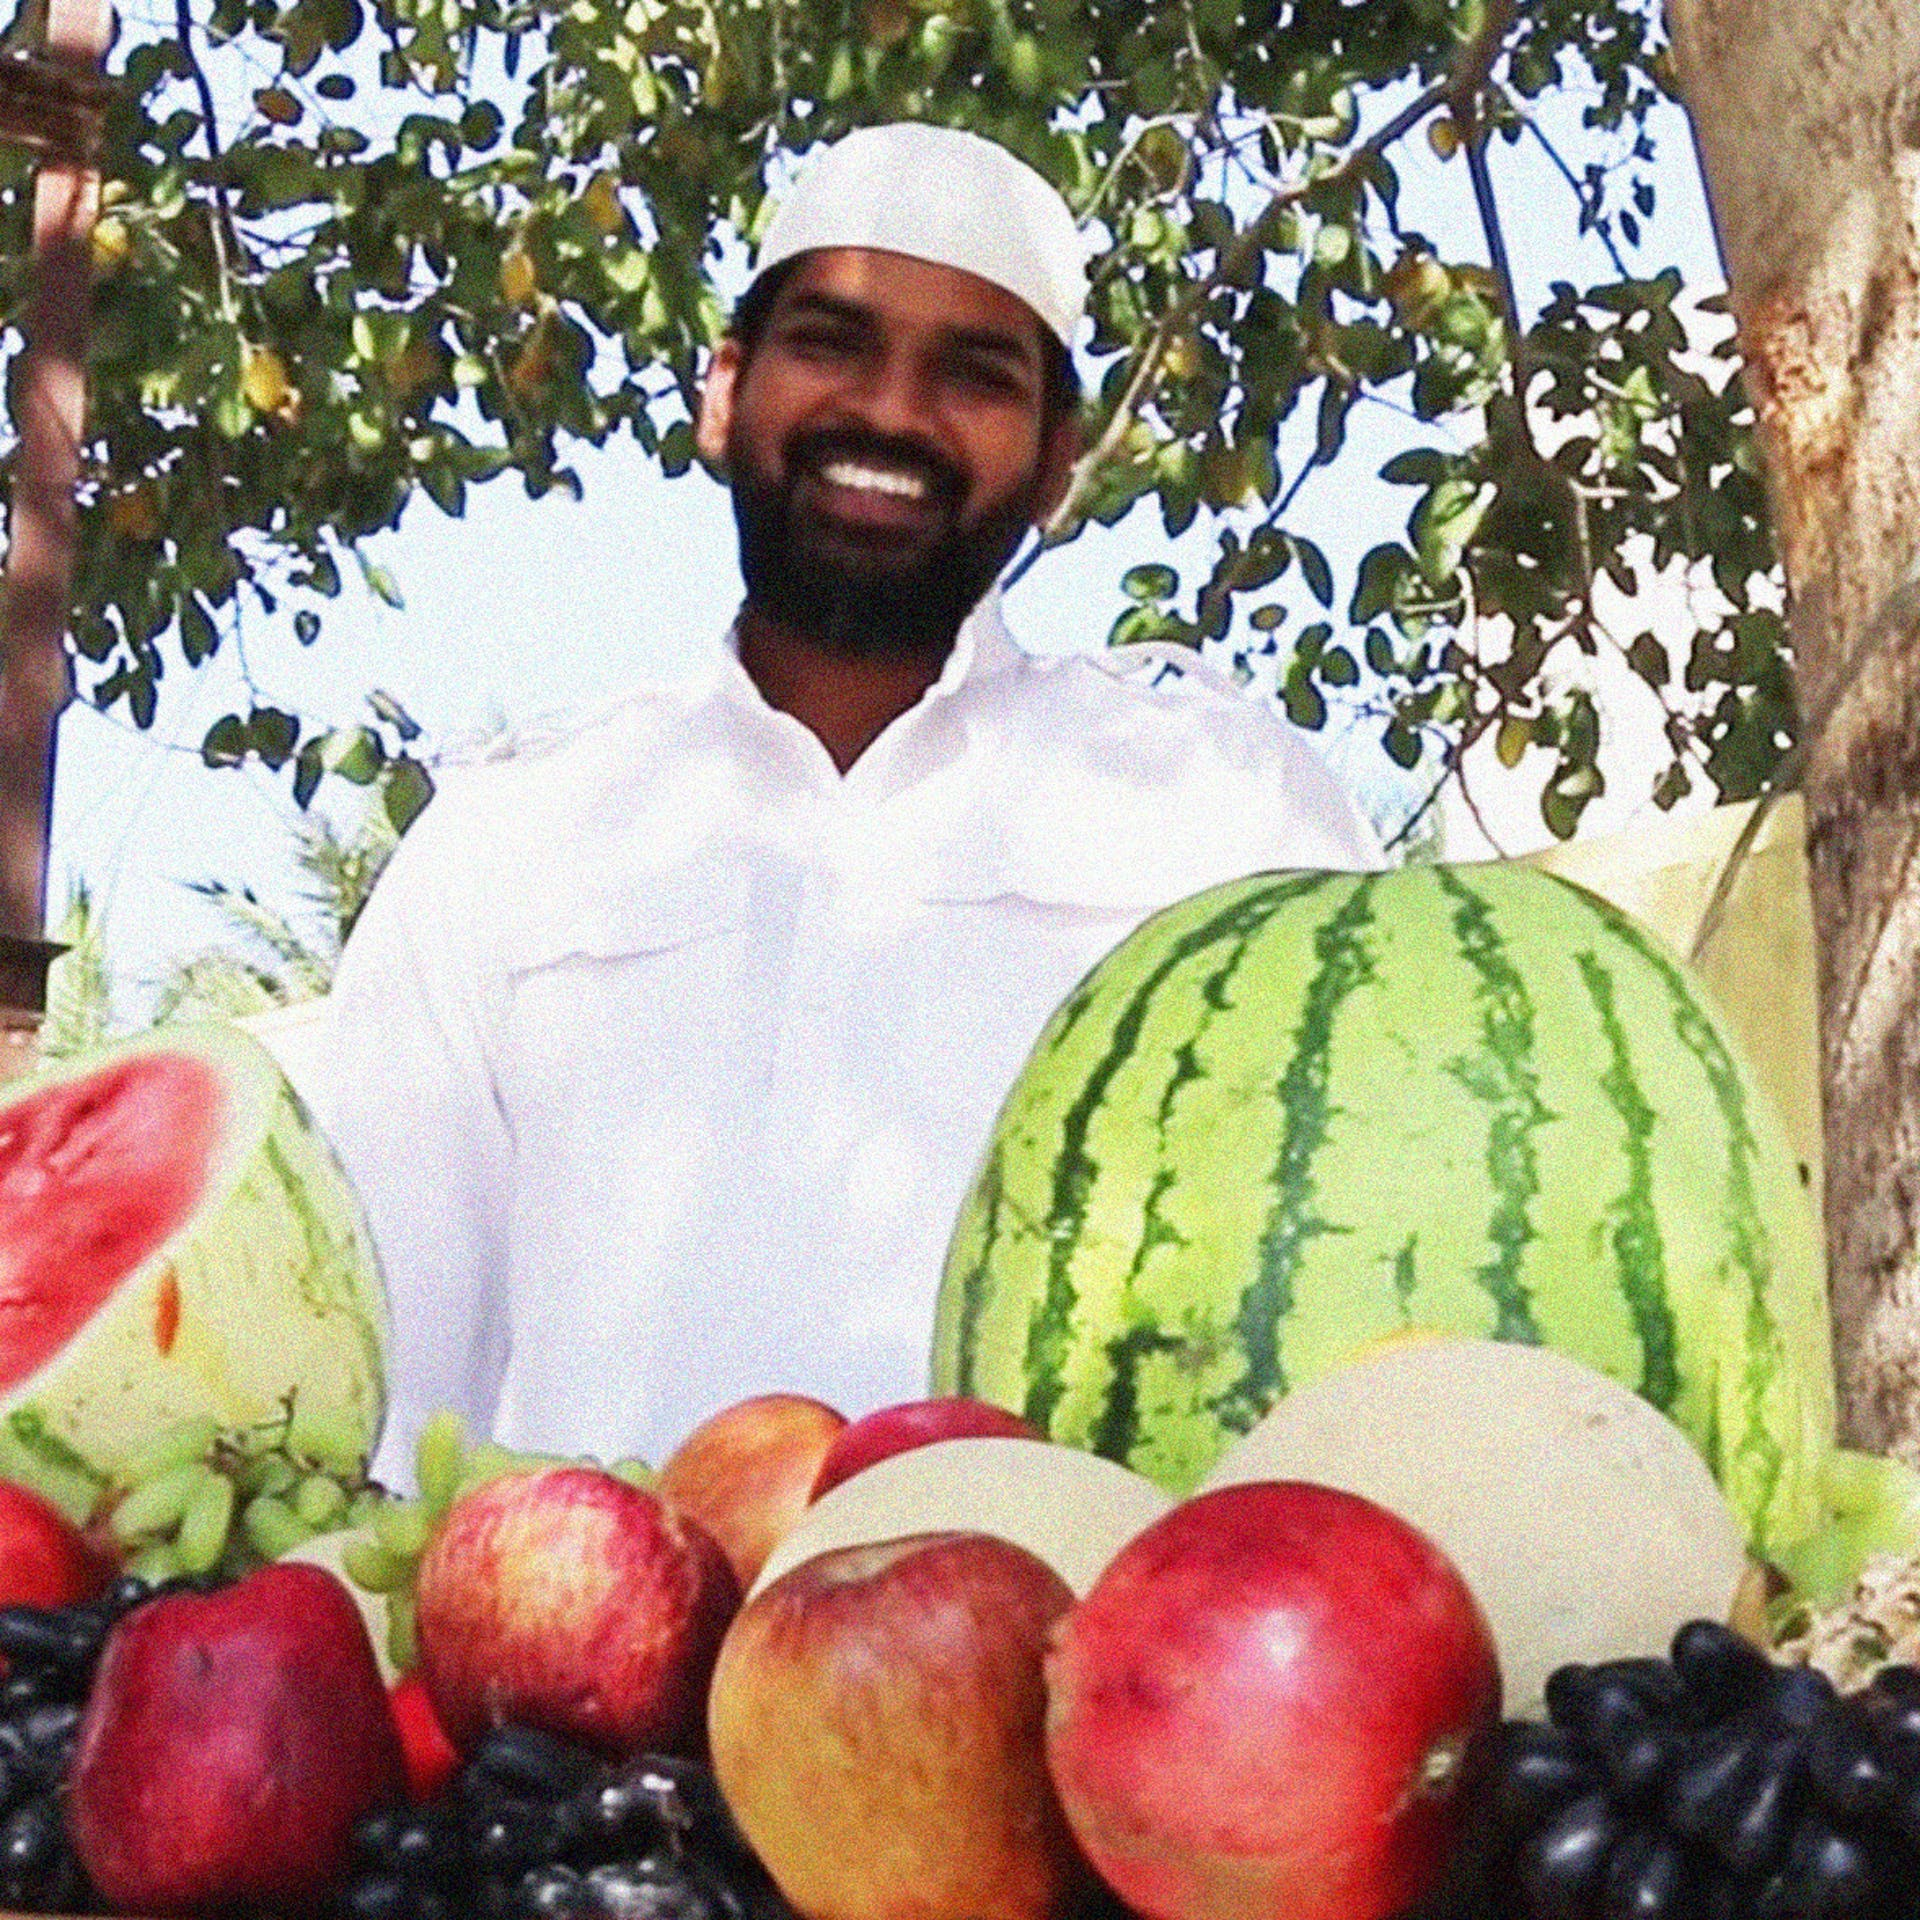 Khwaja Moinuddin's fruit custard video has almost 1.4 million views on YouTube.